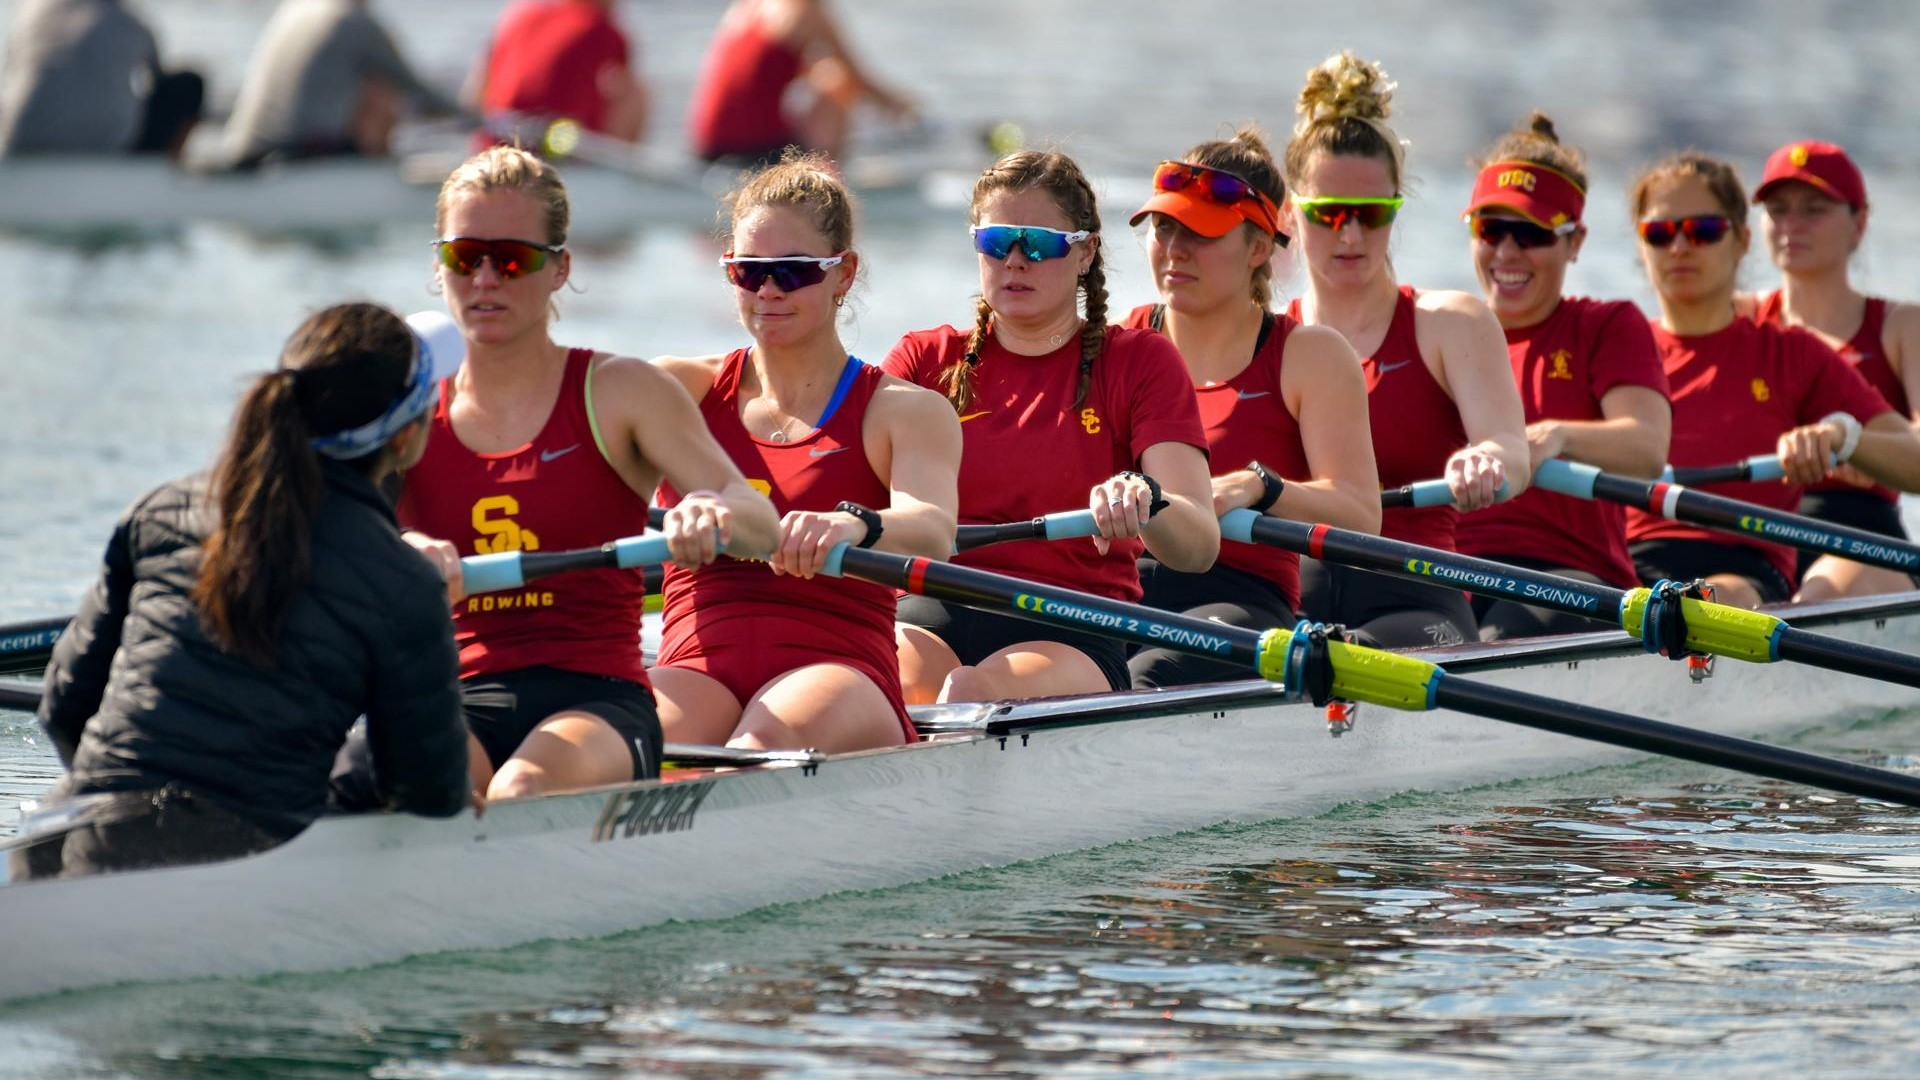 A look at some players on the rowing team